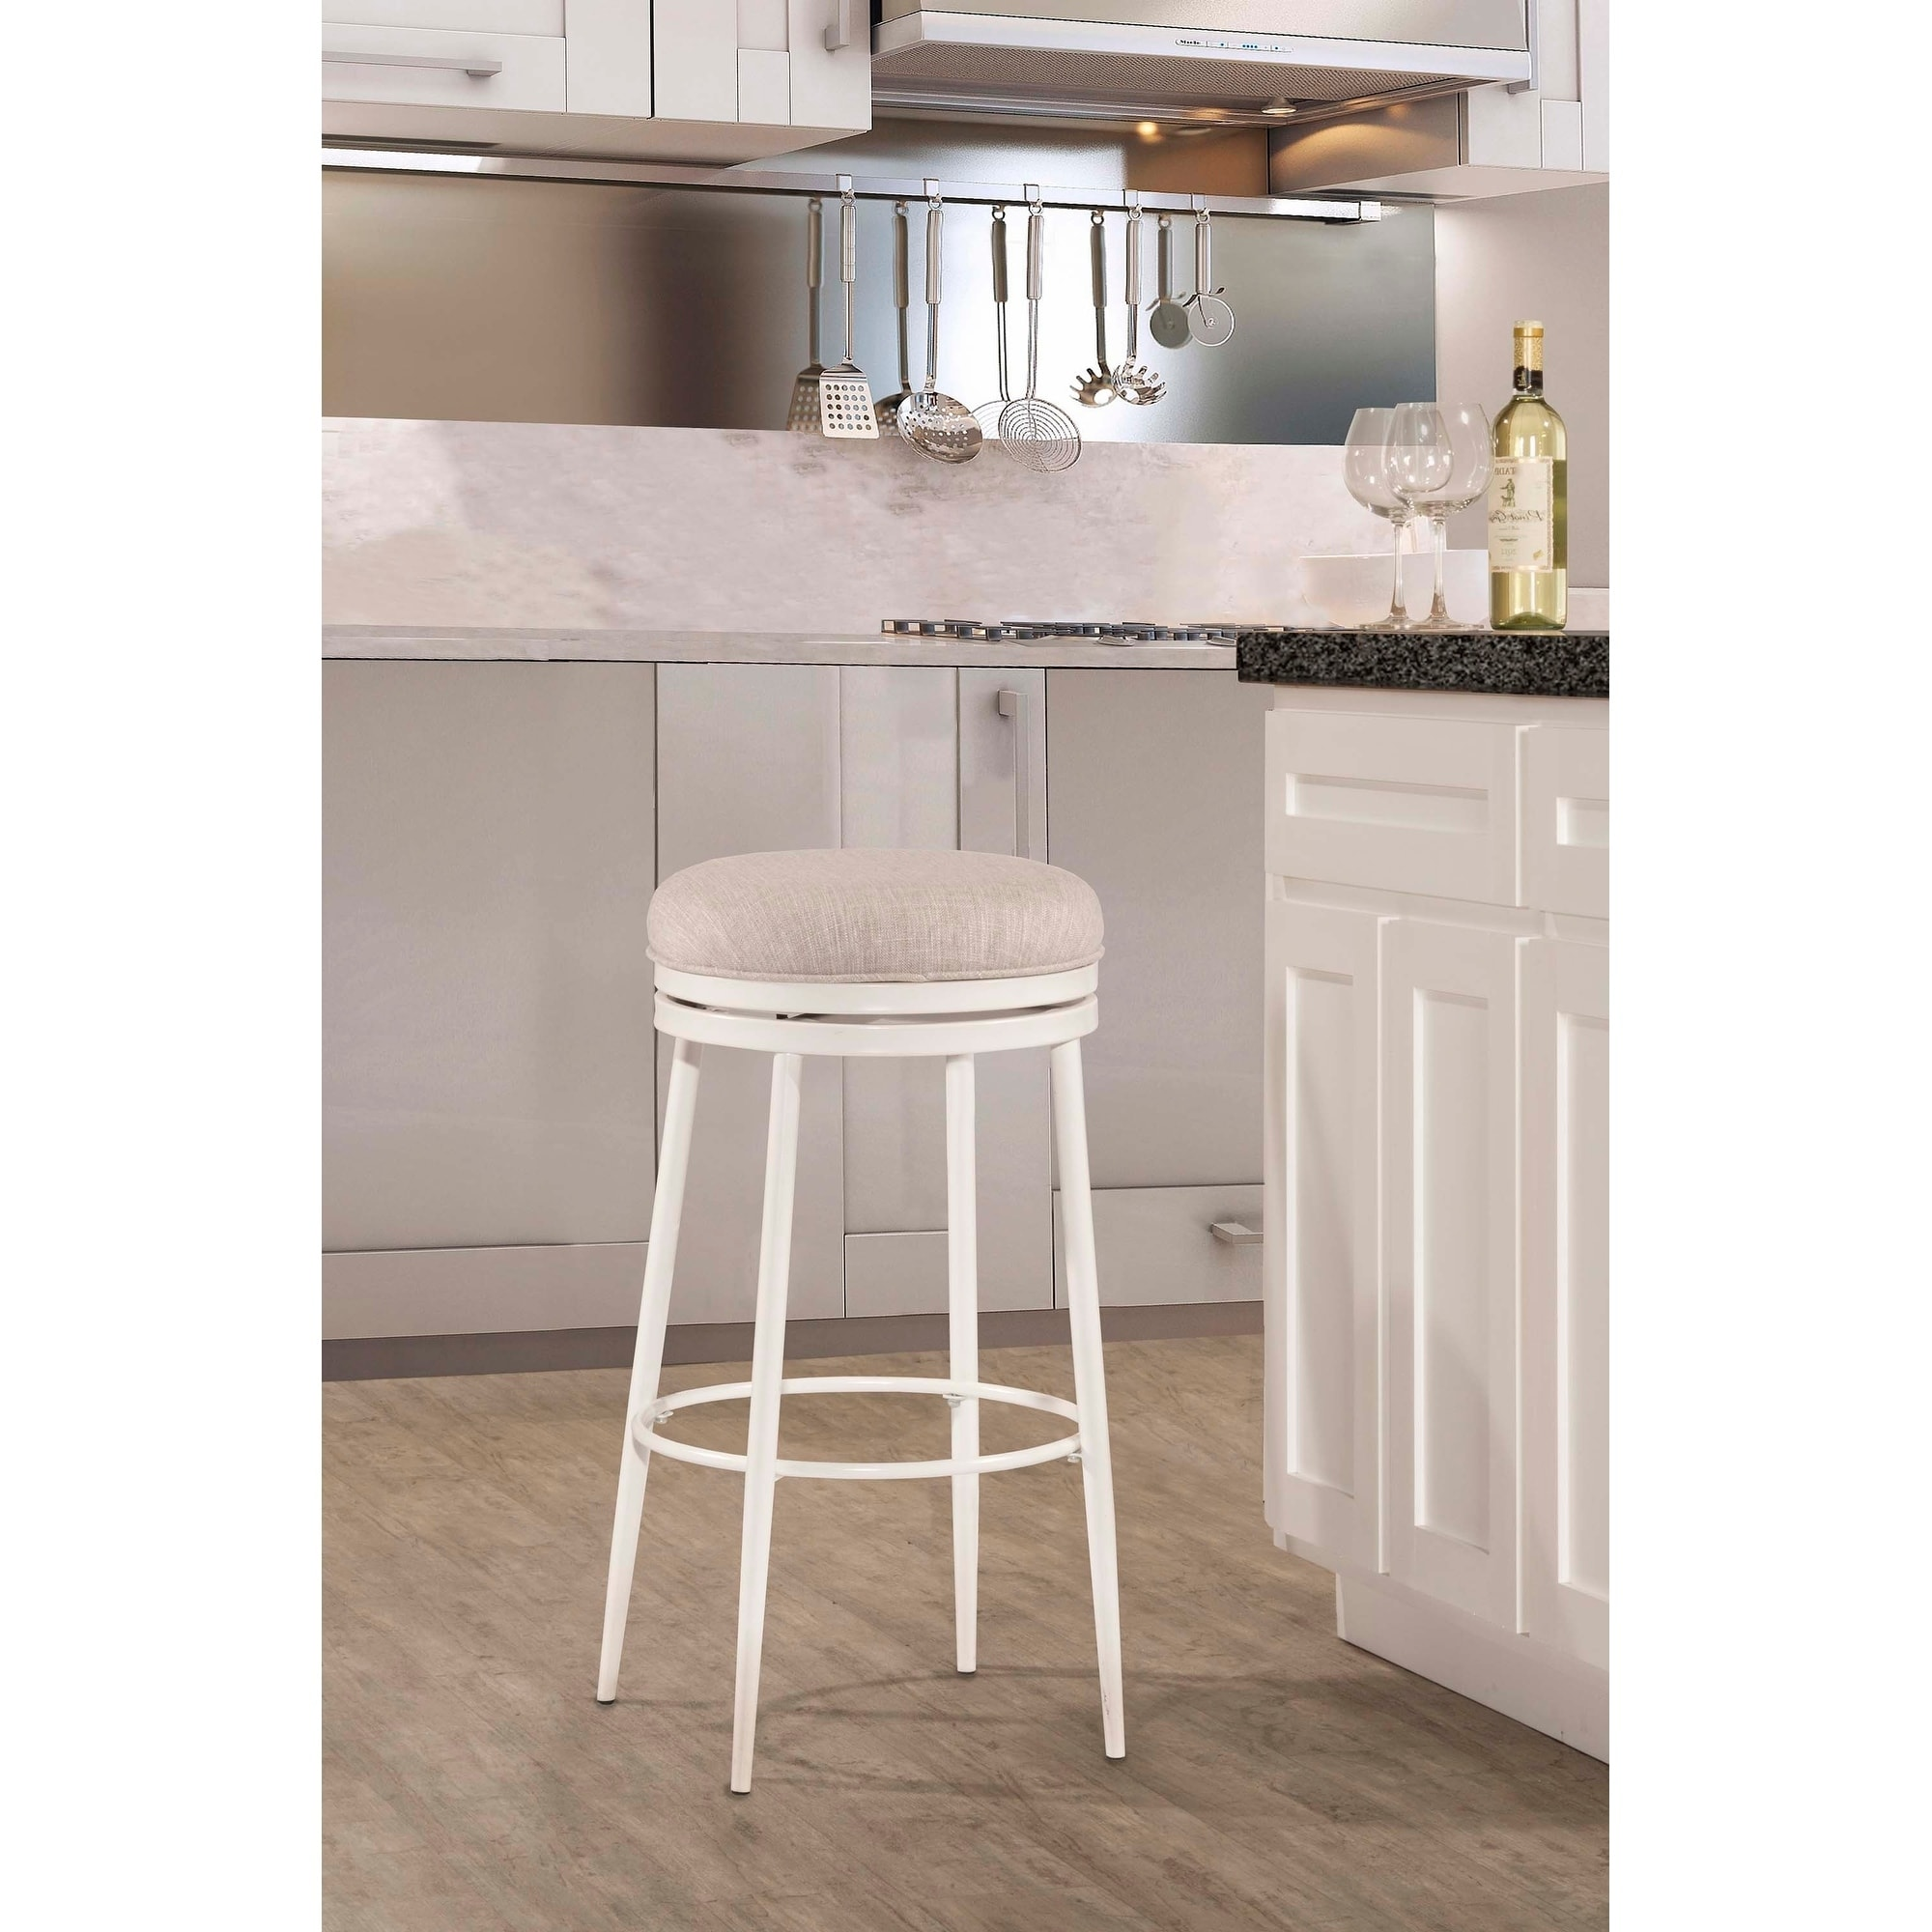 Pleasant Hillsdale Furniture Aubrie Swivel Backless Counter Stool Off White Gmtry Best Dining Table And Chair Ideas Images Gmtryco